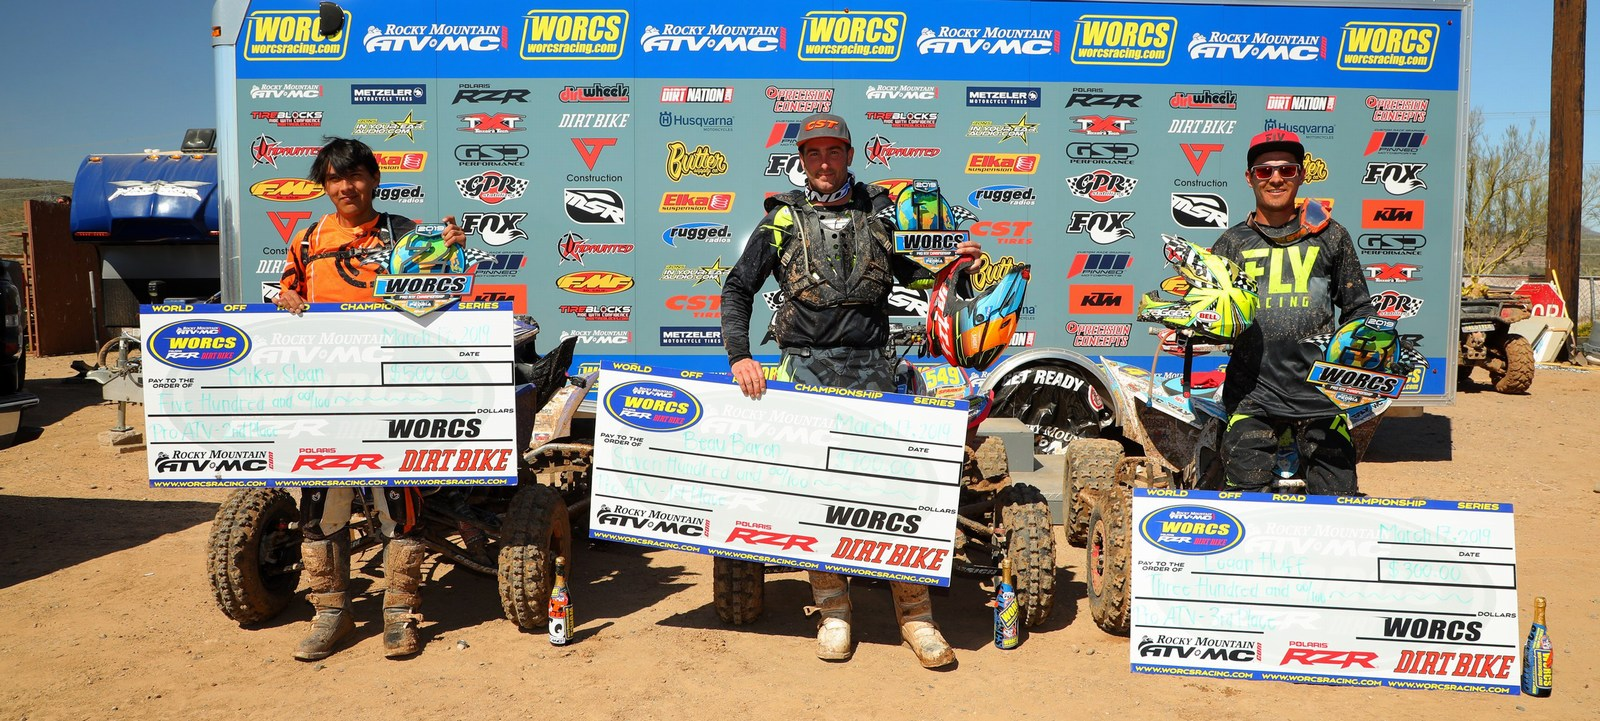 2019-03-pro-atv-podium-worcs-racing